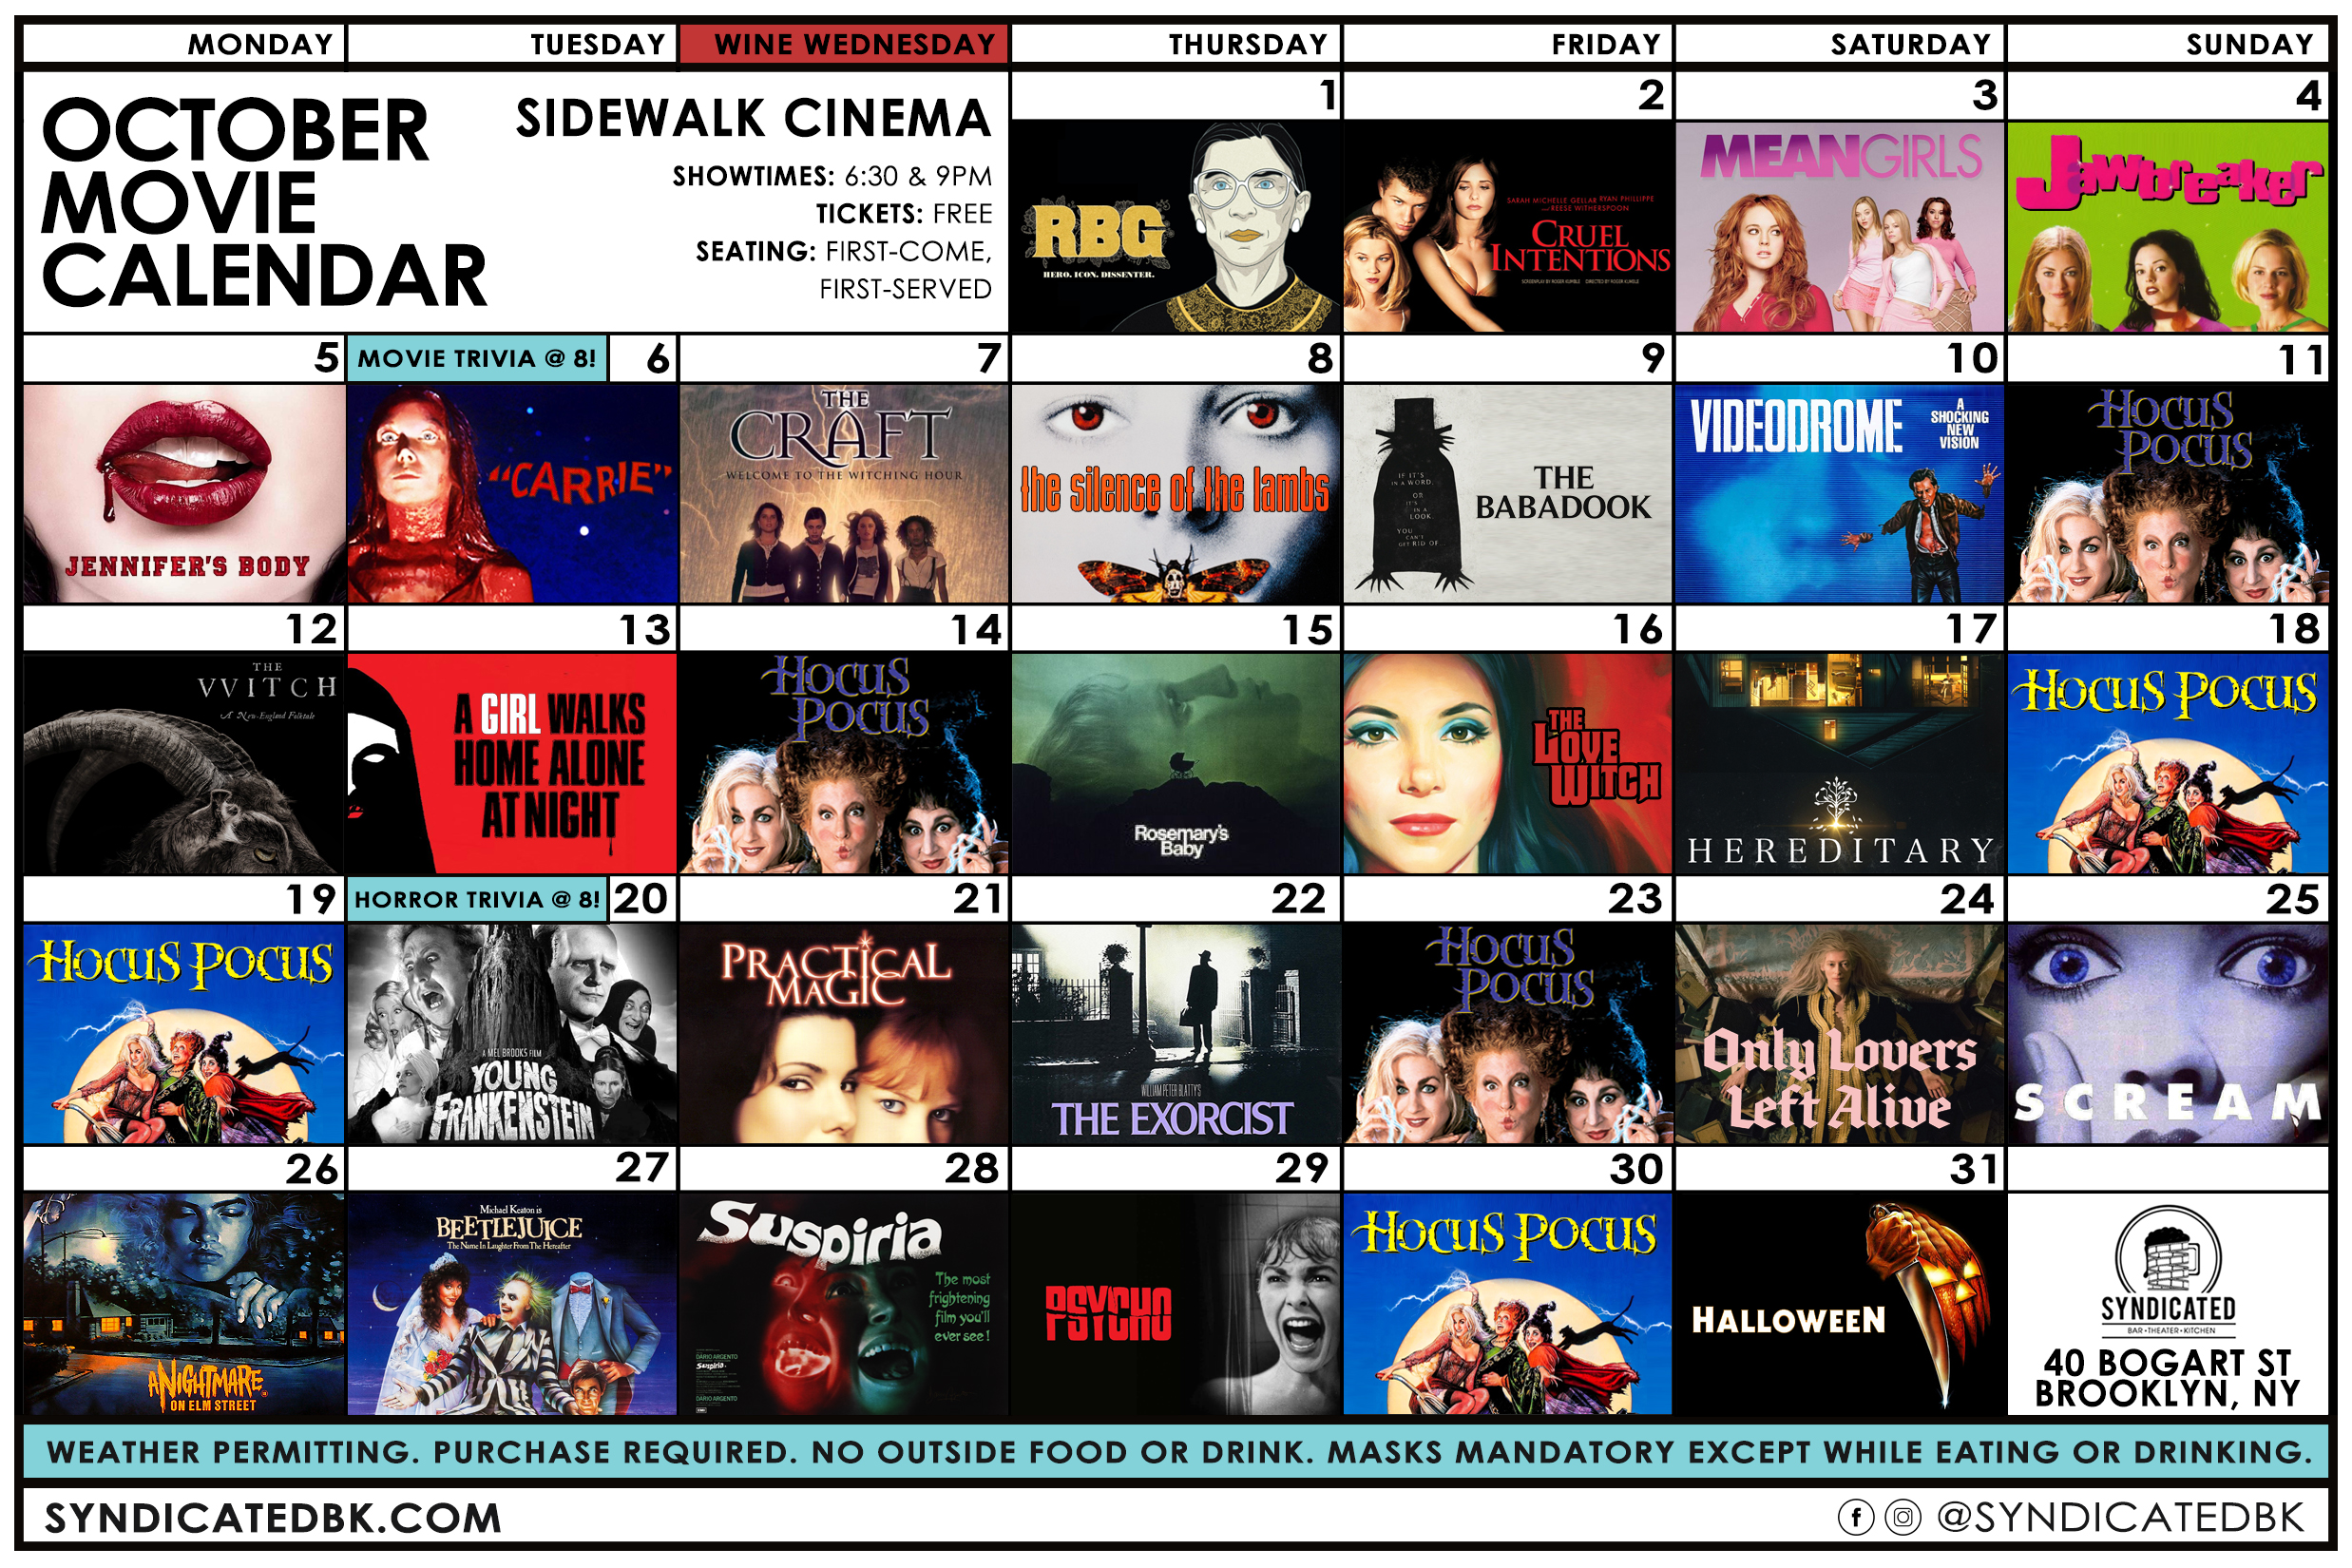 The October Sidewalk Cinema Schedule | October 1st – RBG | 2nd – Cruel Intentions | 3rd – Mean Girls | 4th – Jawbreaker | 5th – Jennifer's Body | 6th – Zoom Movie Trivia and Carrie (1976) | 7th – The Craft | 8th – The Silence of the Lambs | 9th – The Babadook | 10th – Videodrome | 11th – Hocus Pocus | 12th – The Witch | 13th – A Girl Walks Home Alone at Night | 14th – Hocus Pocus | 15th – Rosemary's Baby | 16th – The Love Witch | 17th – Hereditary | 18th – Hocus Pocus | 19th – Hocus Pocus | 20th – Zoom Horror Trivia and Young Frankenstein | 21st – Practical Magic | 22nd – The Exorcist | 23rd – Hocus Pocus | 24th – Only Lovers Left Alive | 25th – Scream | 26th – A Nightmare on Elm Street | 27th – Beetlejuice | 28th – Suspiria (1977) | 29th – Psycho (1960) | 30th – Hocus Pocus | 31st – Halloween (1978)